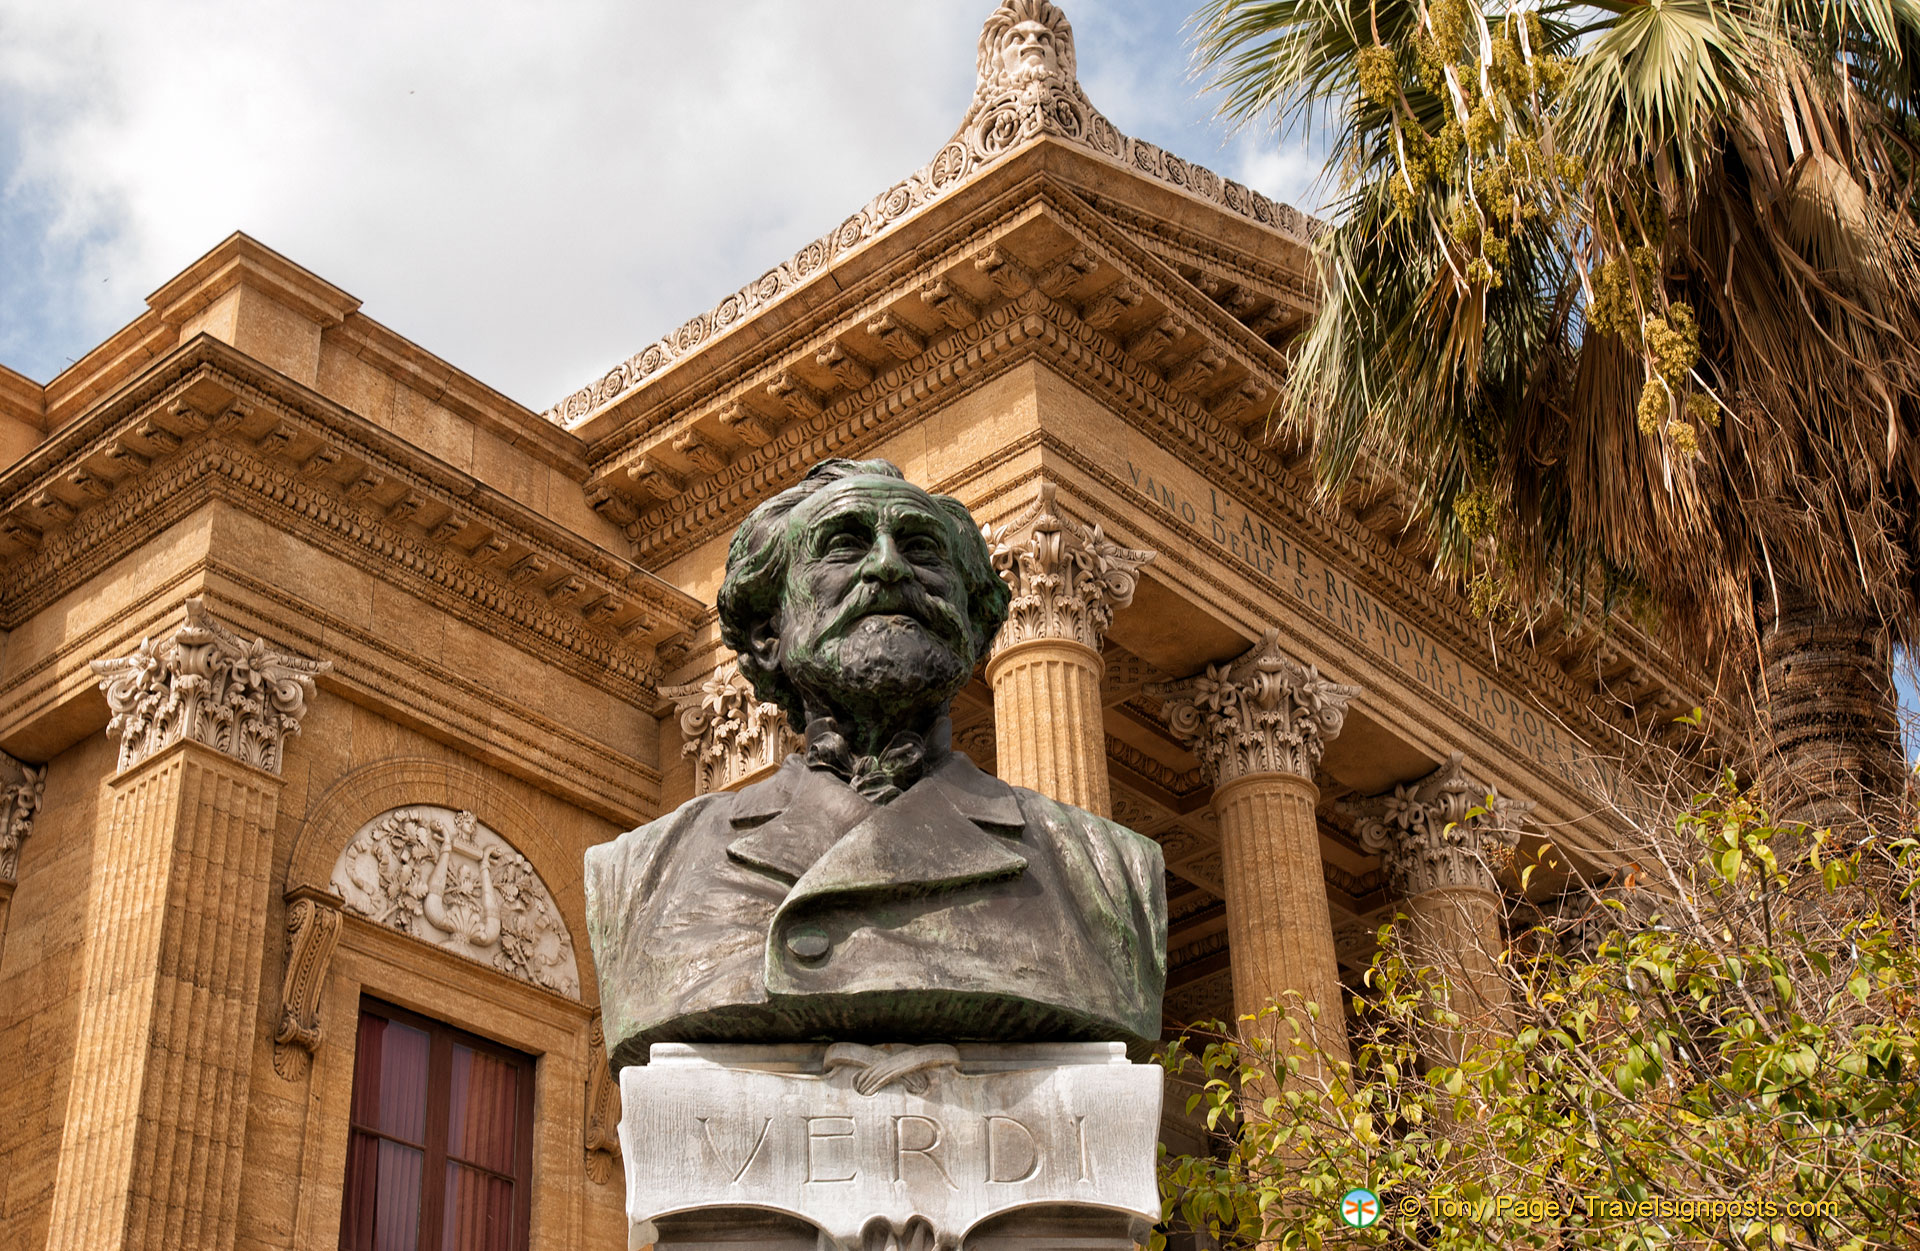 Palermo Sizzles with Culture, Art, History and Gastronomy